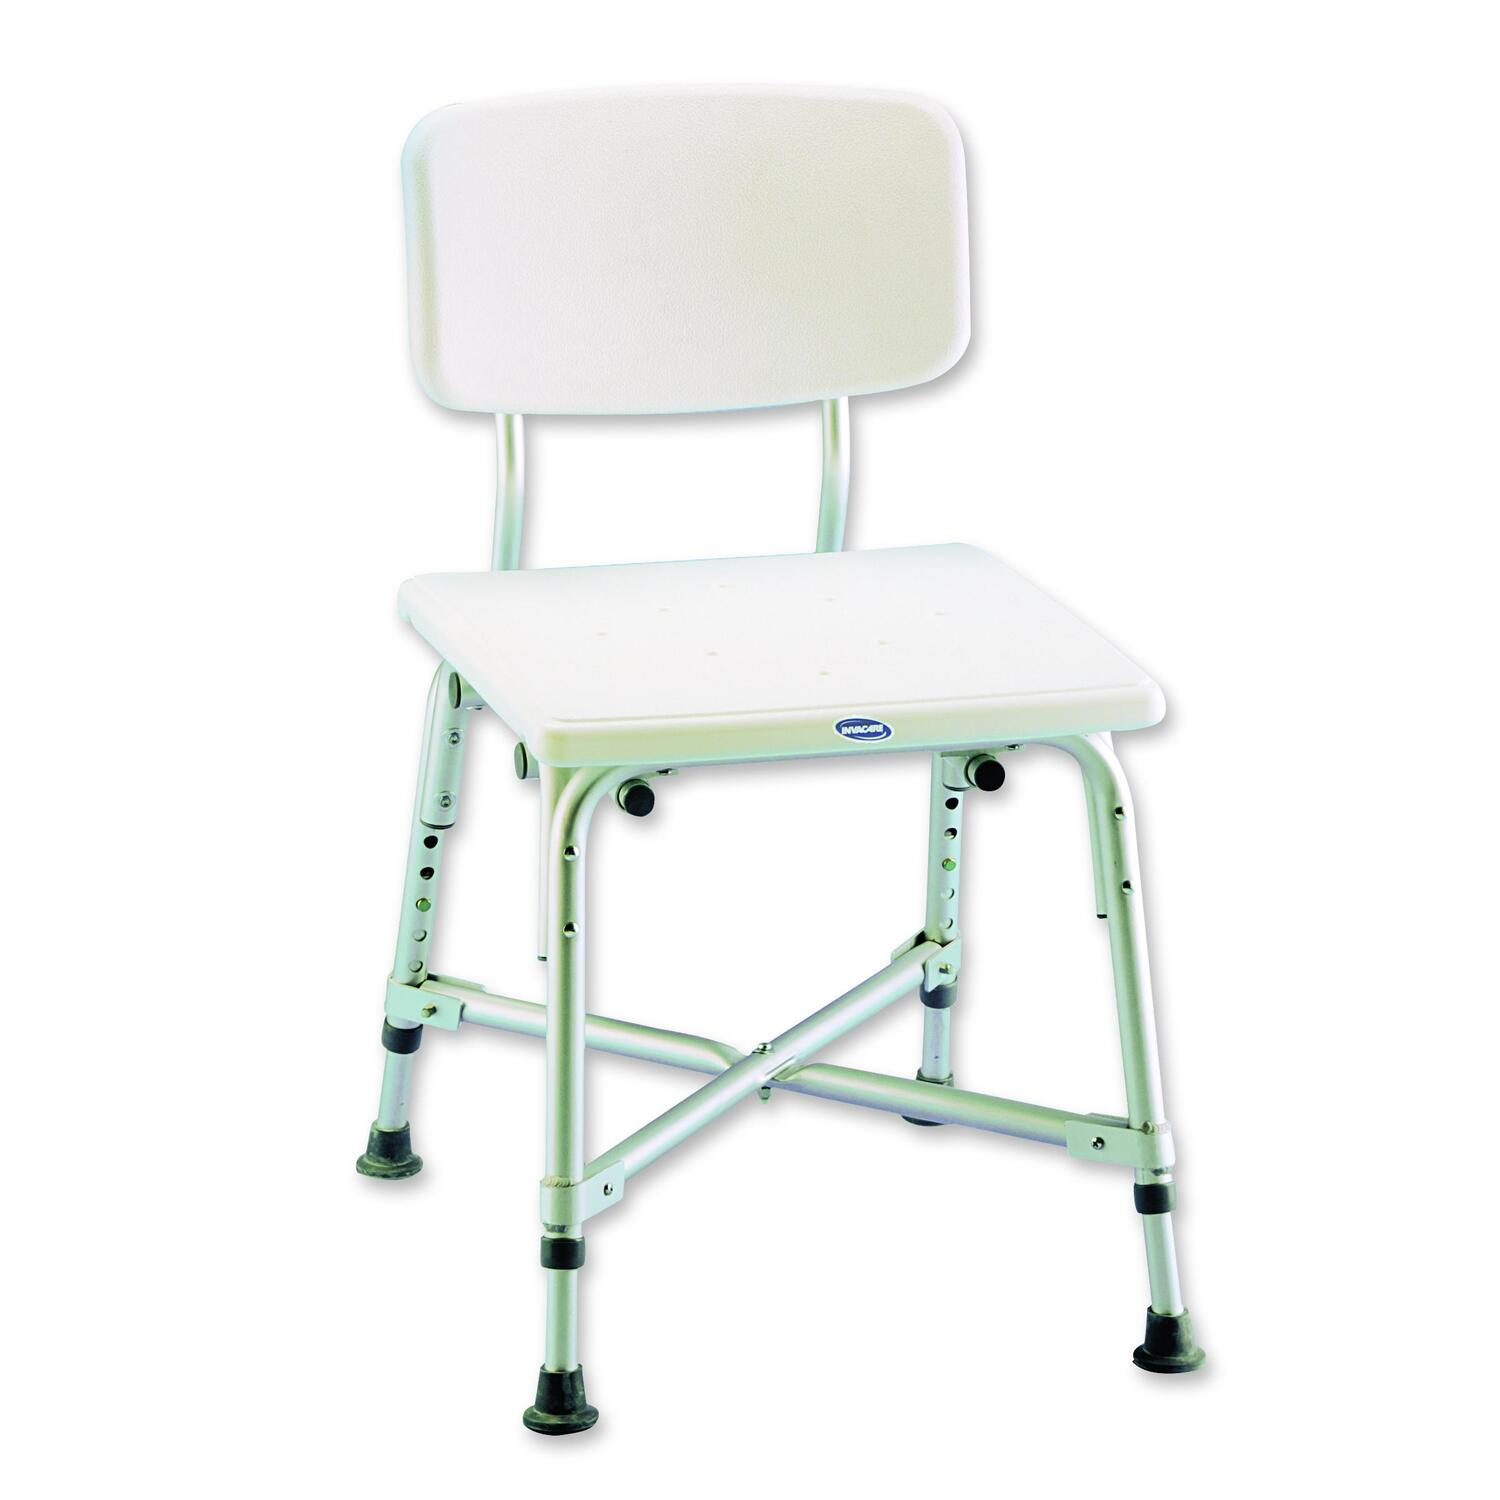 Bariatric Shower Chair Invacare Invacare Bariatric Shower Chair By Oj Commerce